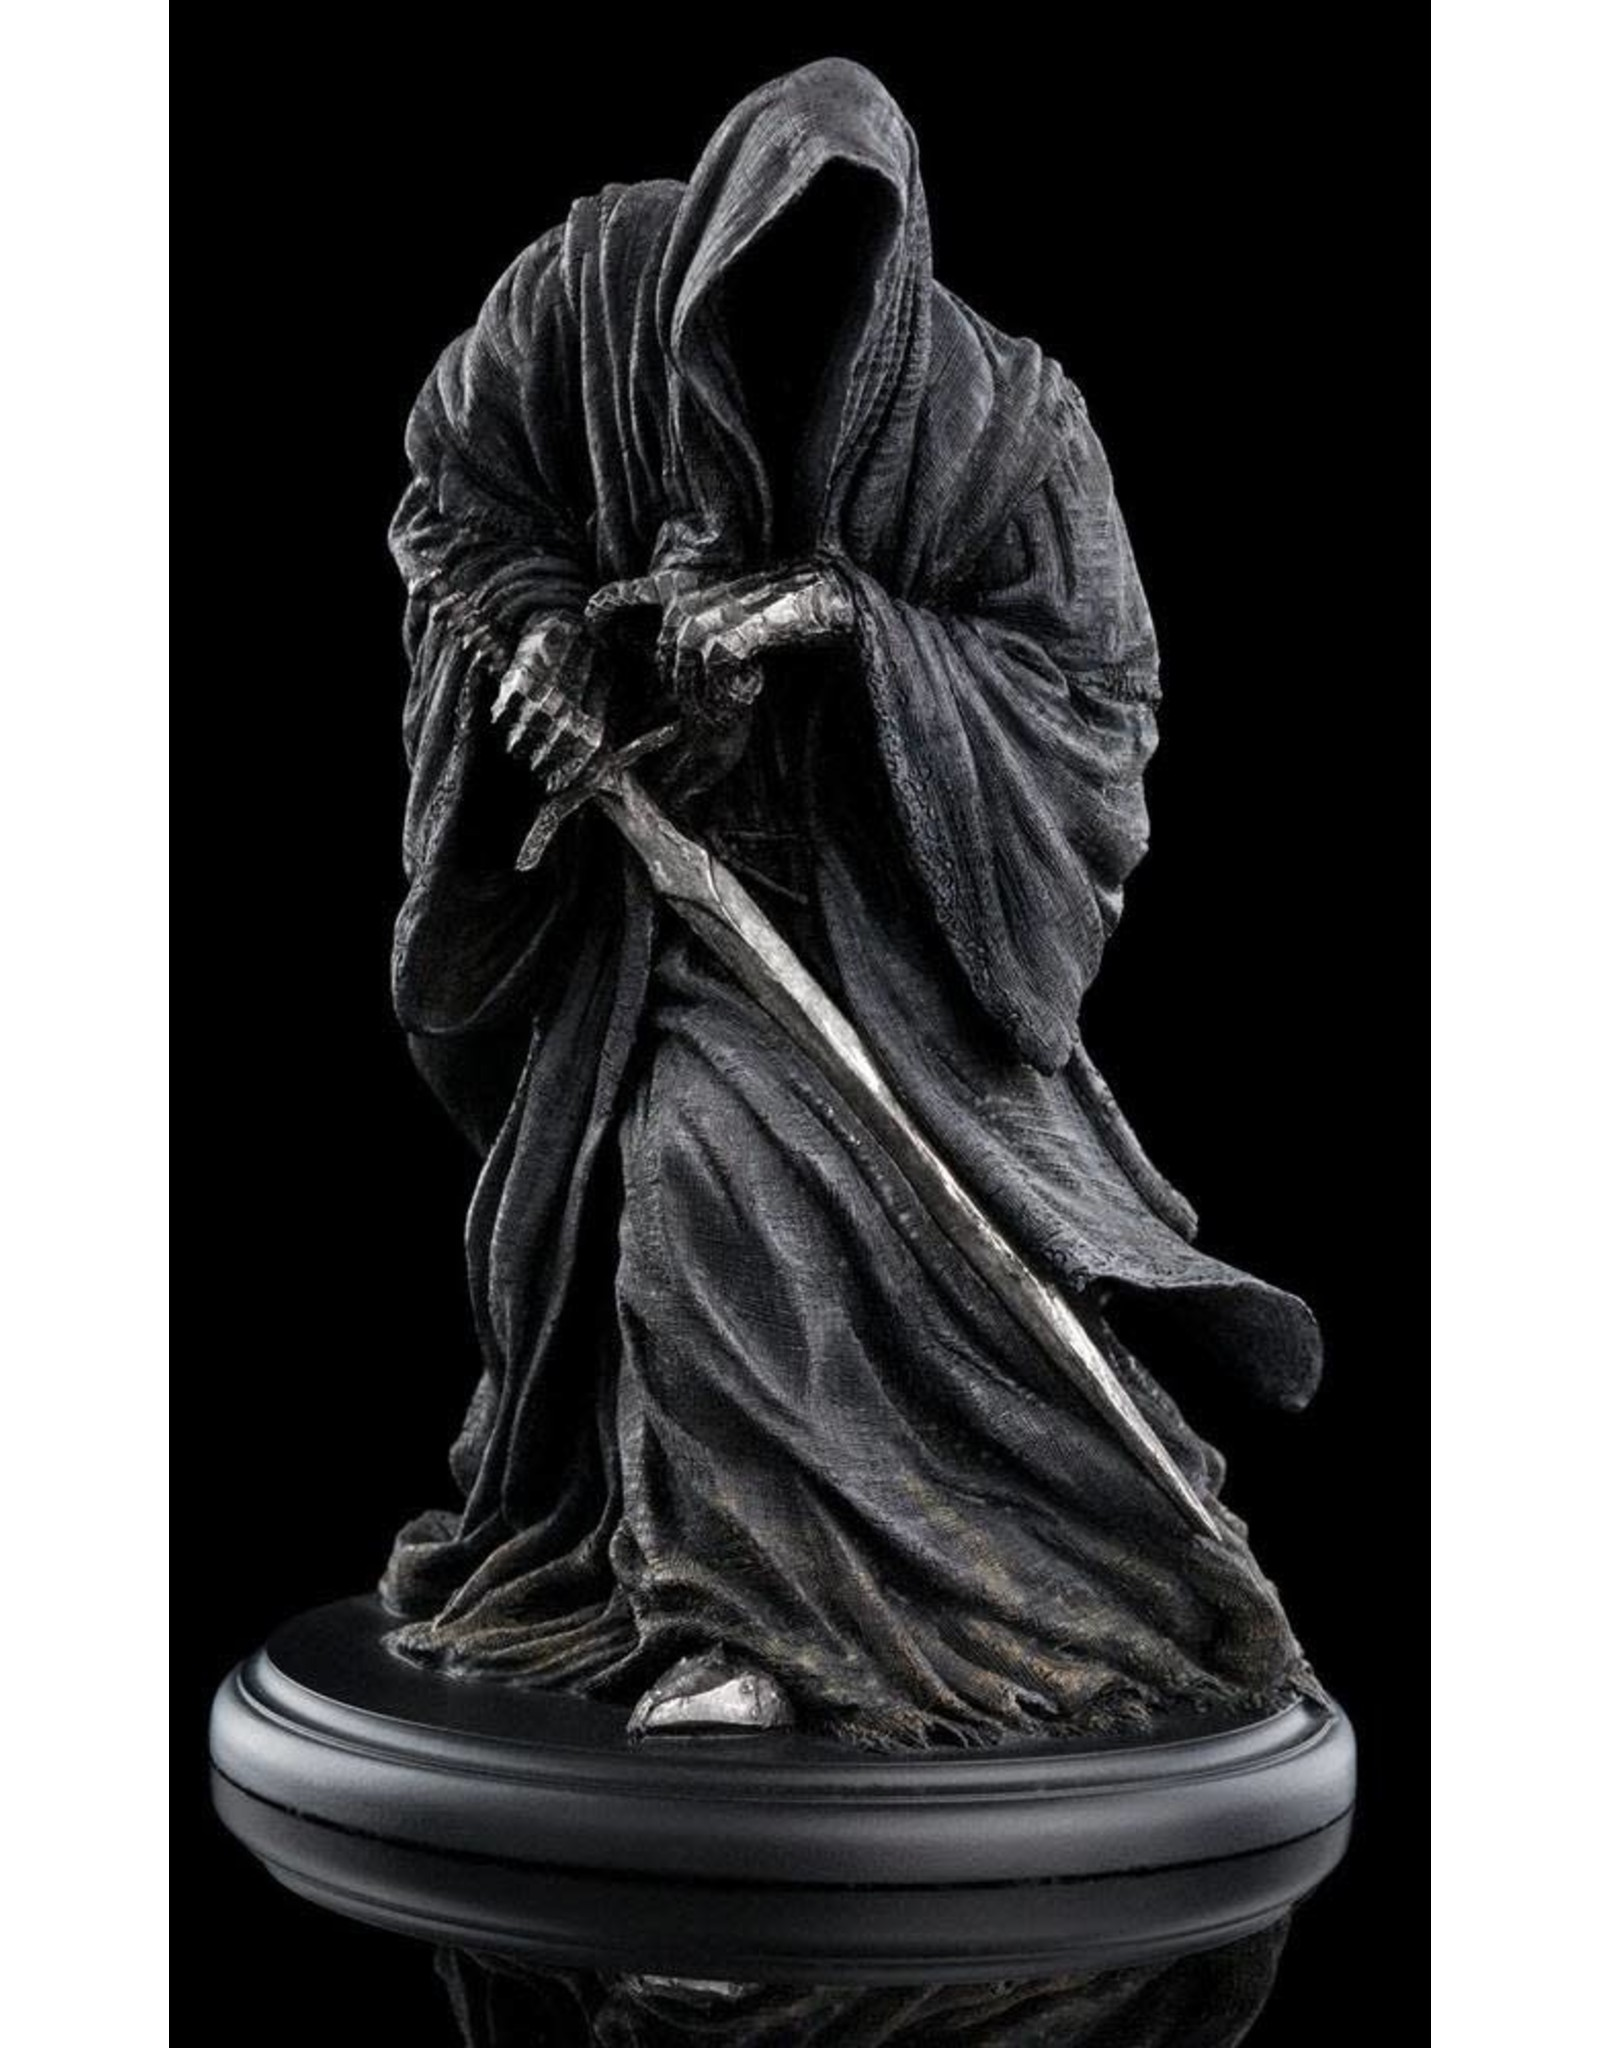 Weta LORD OF THE RINGS Statue - Ringwraith